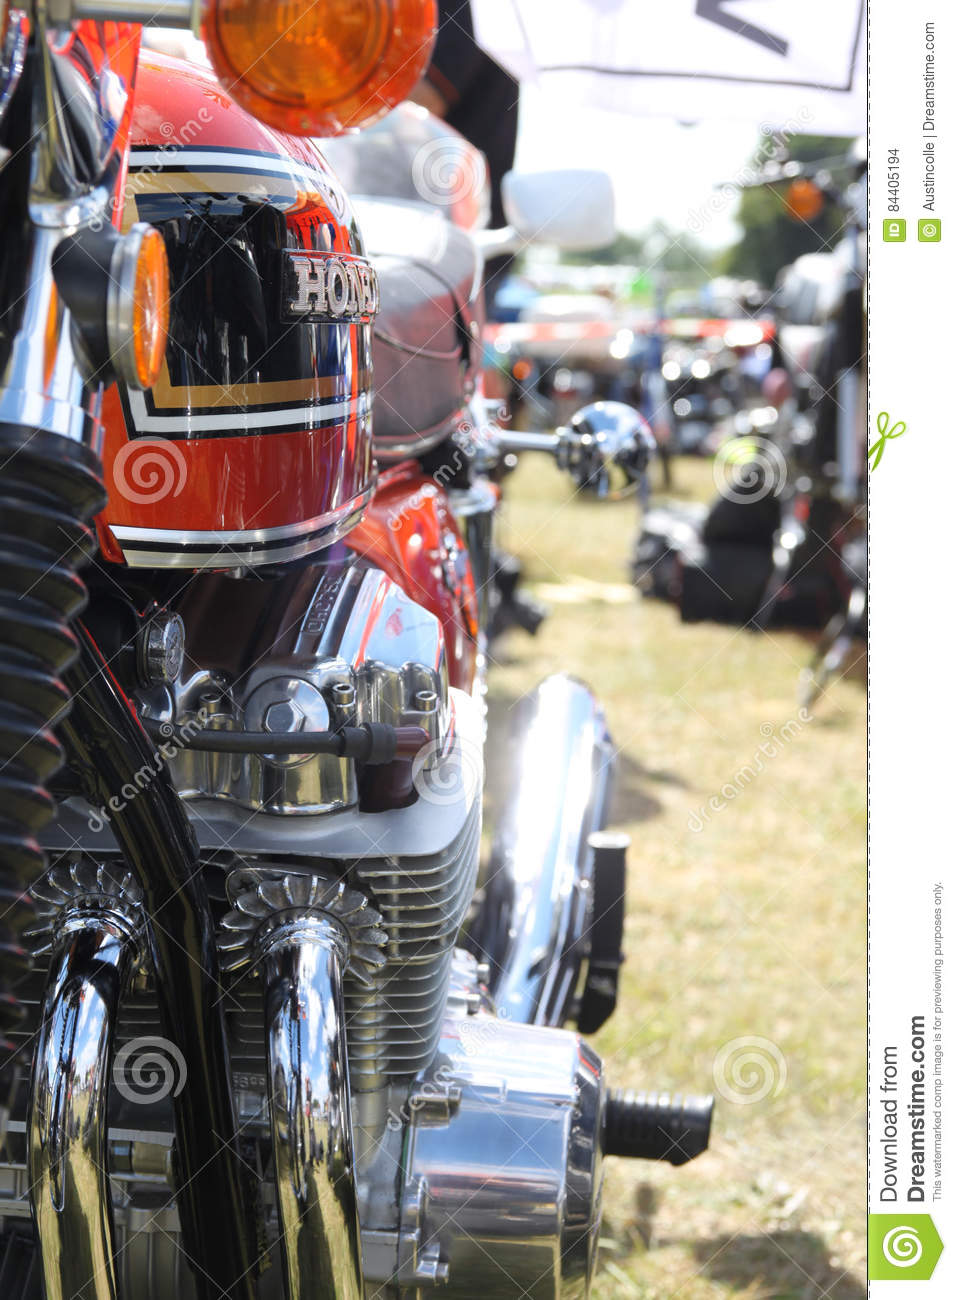 Honda Cb 750 Four Engine And Petrol Tank Editorial Stock Image